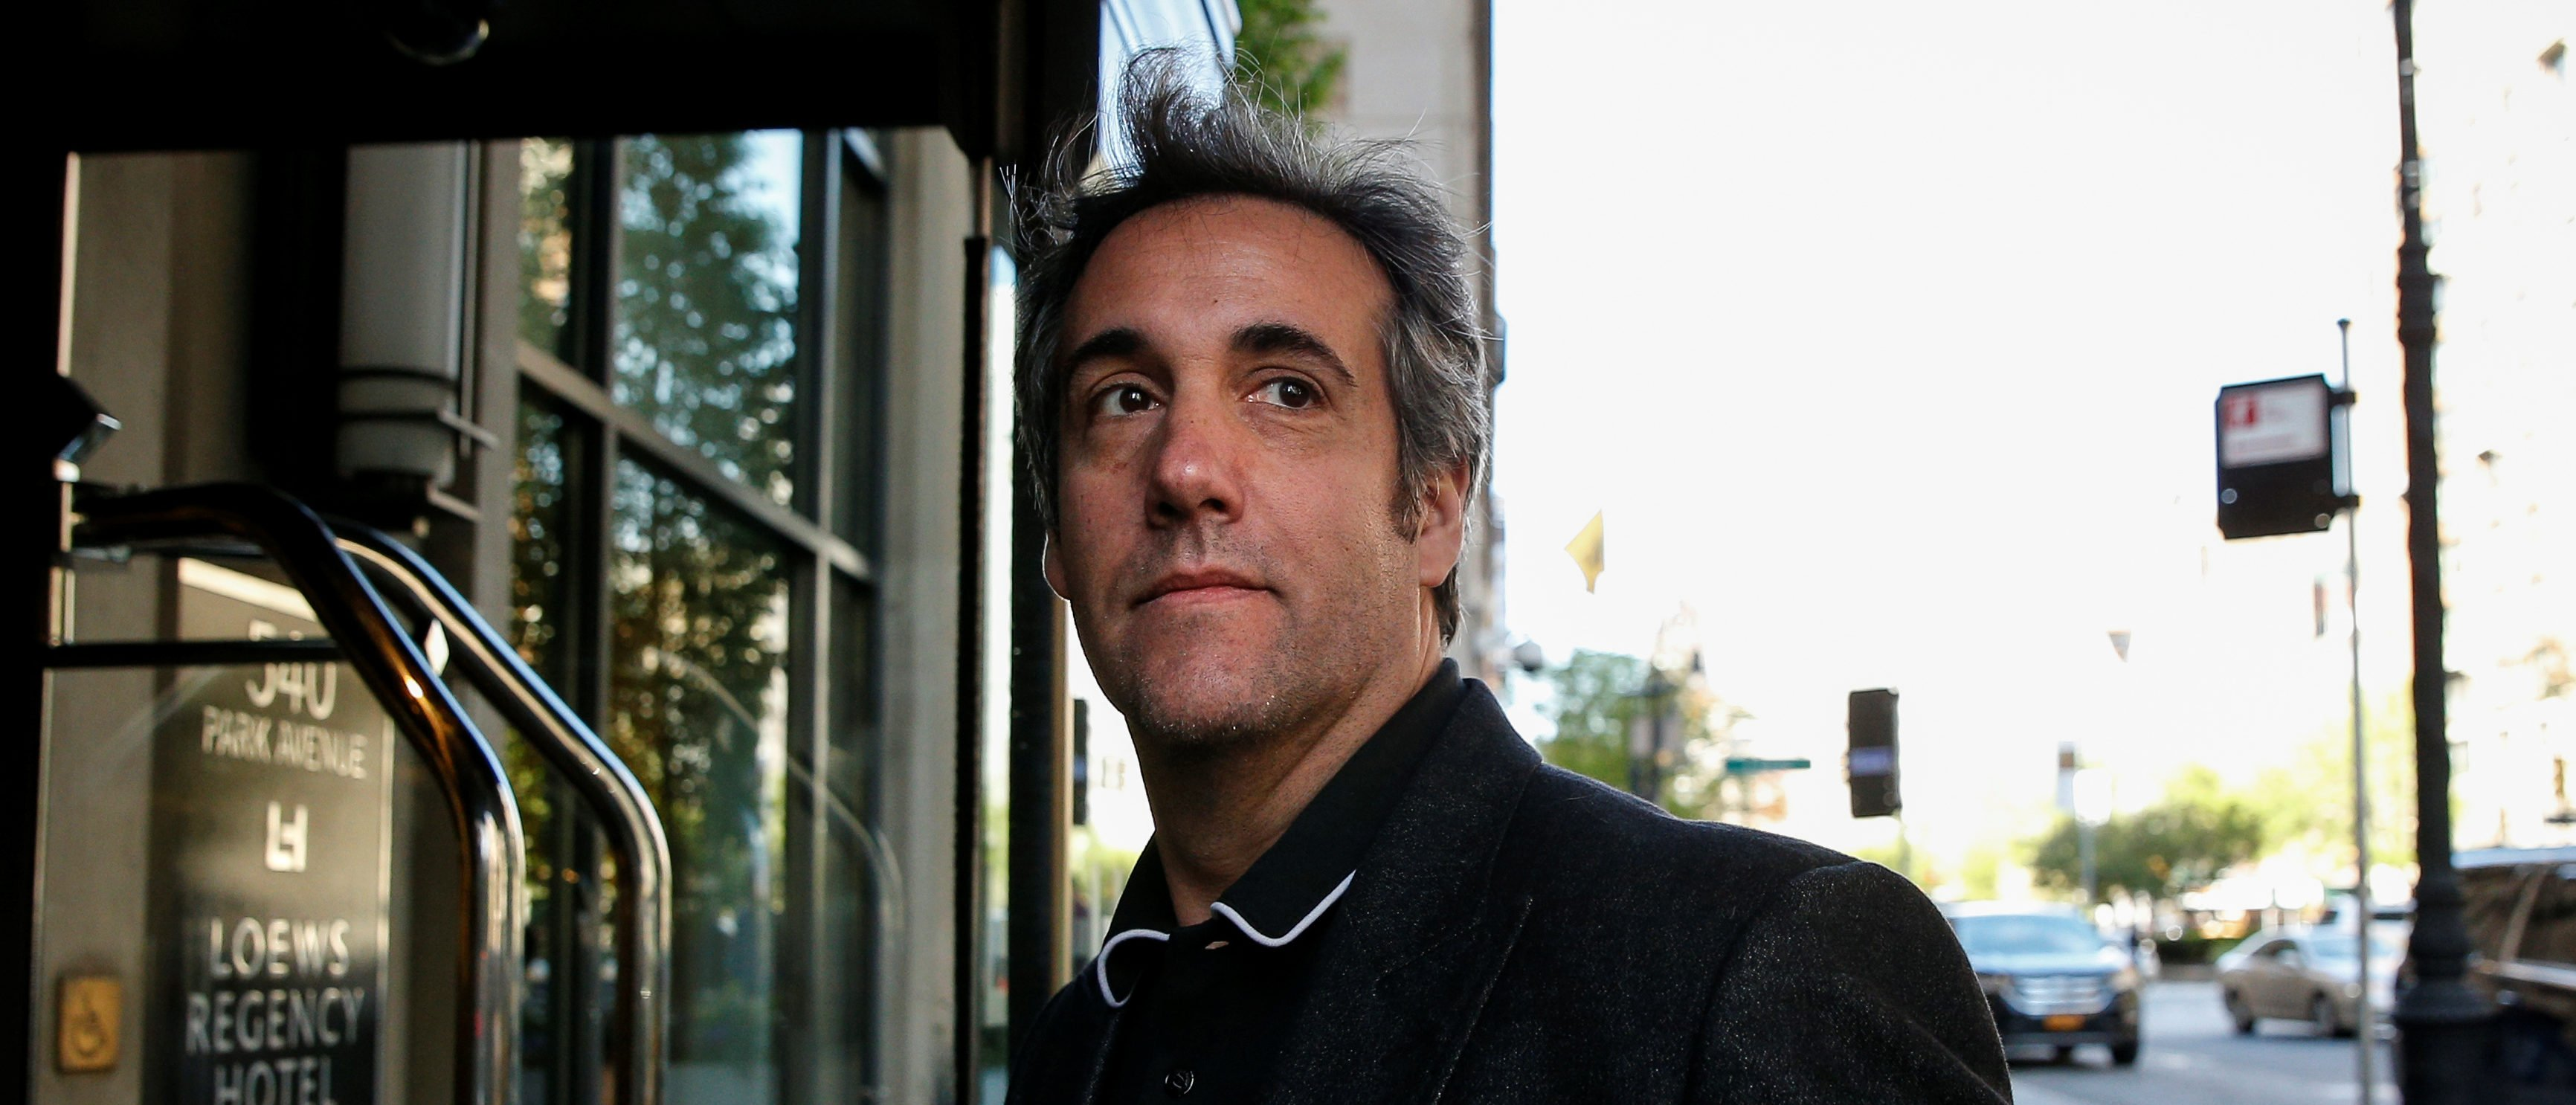 Michael Cohen Sets The Record Straight On Tom Arnold 'Encounter' And Whether POTUS Was Discussed